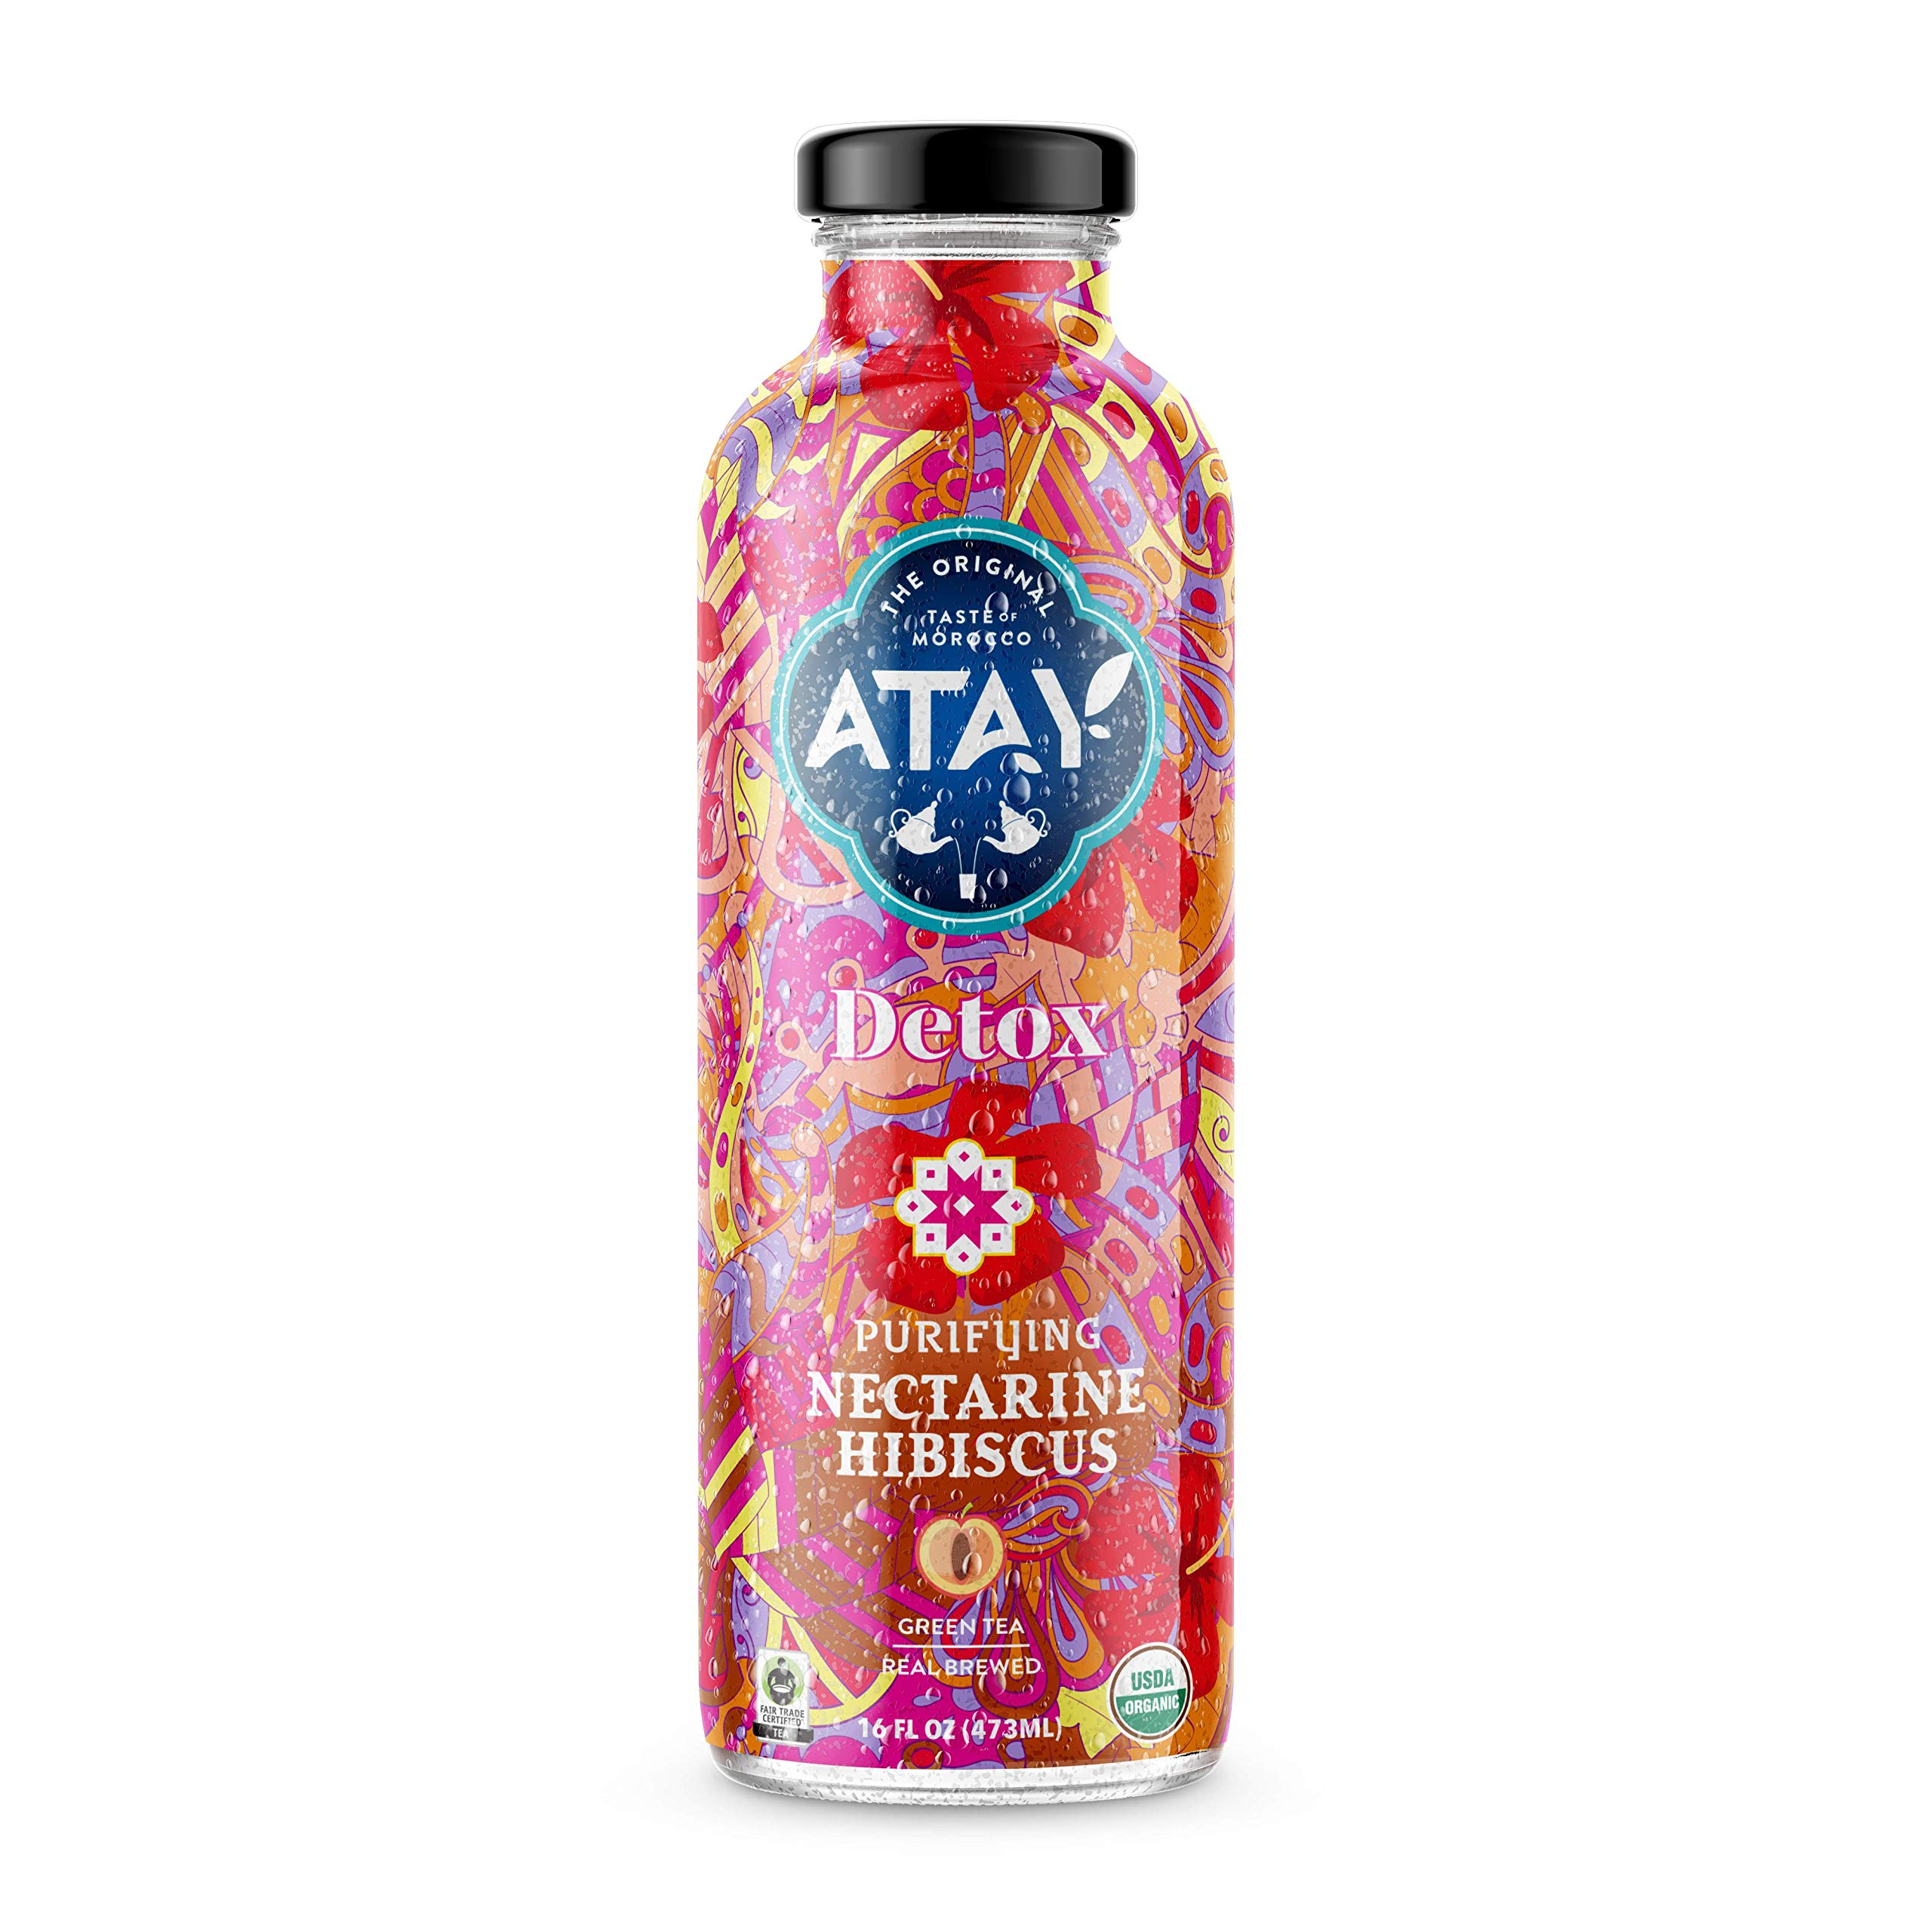 ATAY Moroccan Organic Nectarine Hibiscus Iced Tea - Made With Organic Pure Green Tea And All-Natural Organic Stevia Leaf Extract For A Delicious and Subtle Sweet Flavor - 16 Oz, 8 Pack